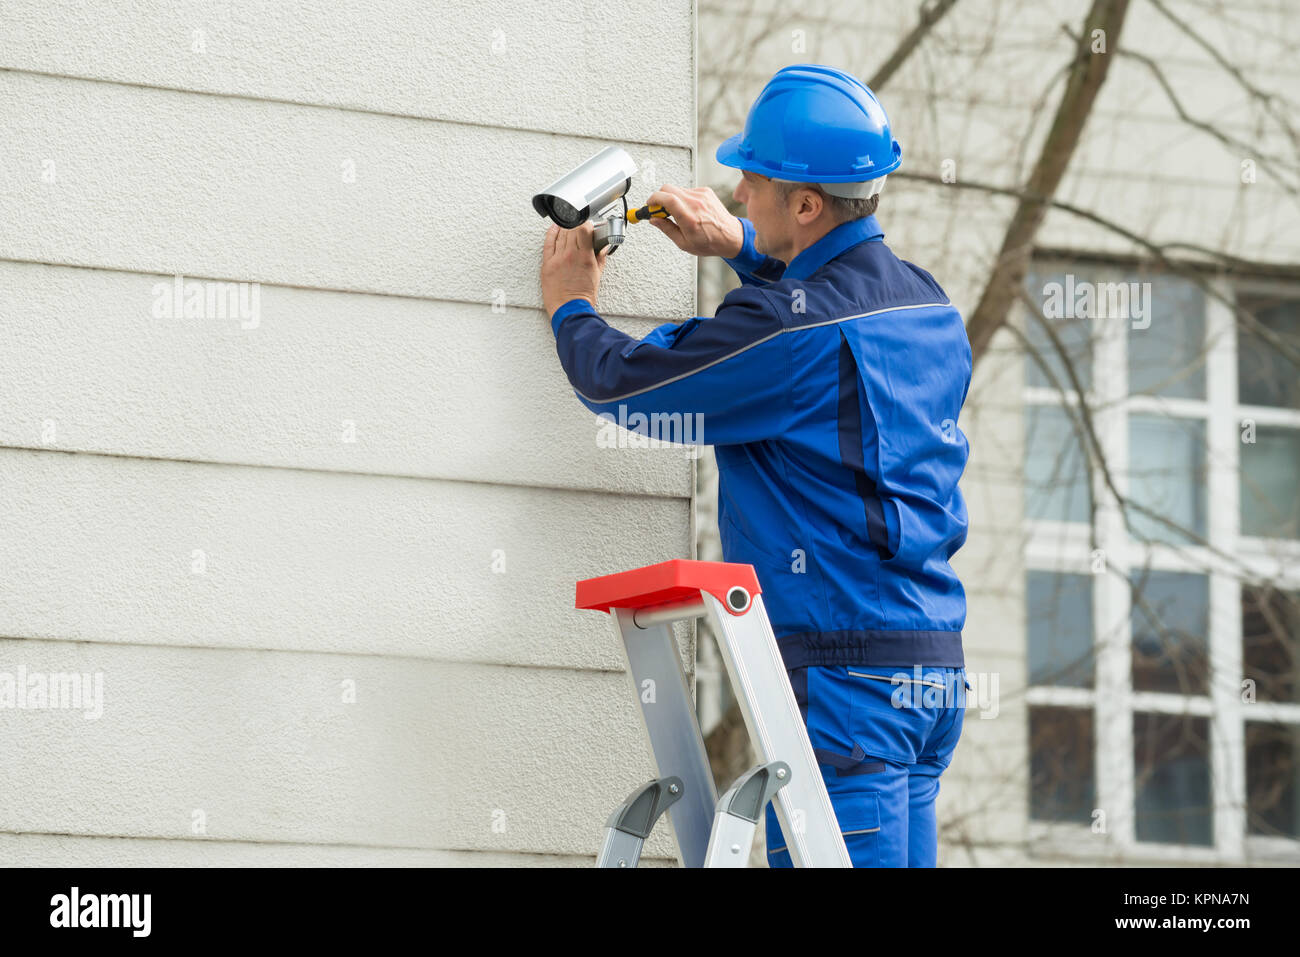 Male Technician Standing On Stepladder Fitting CCTV Camera - Stock Image